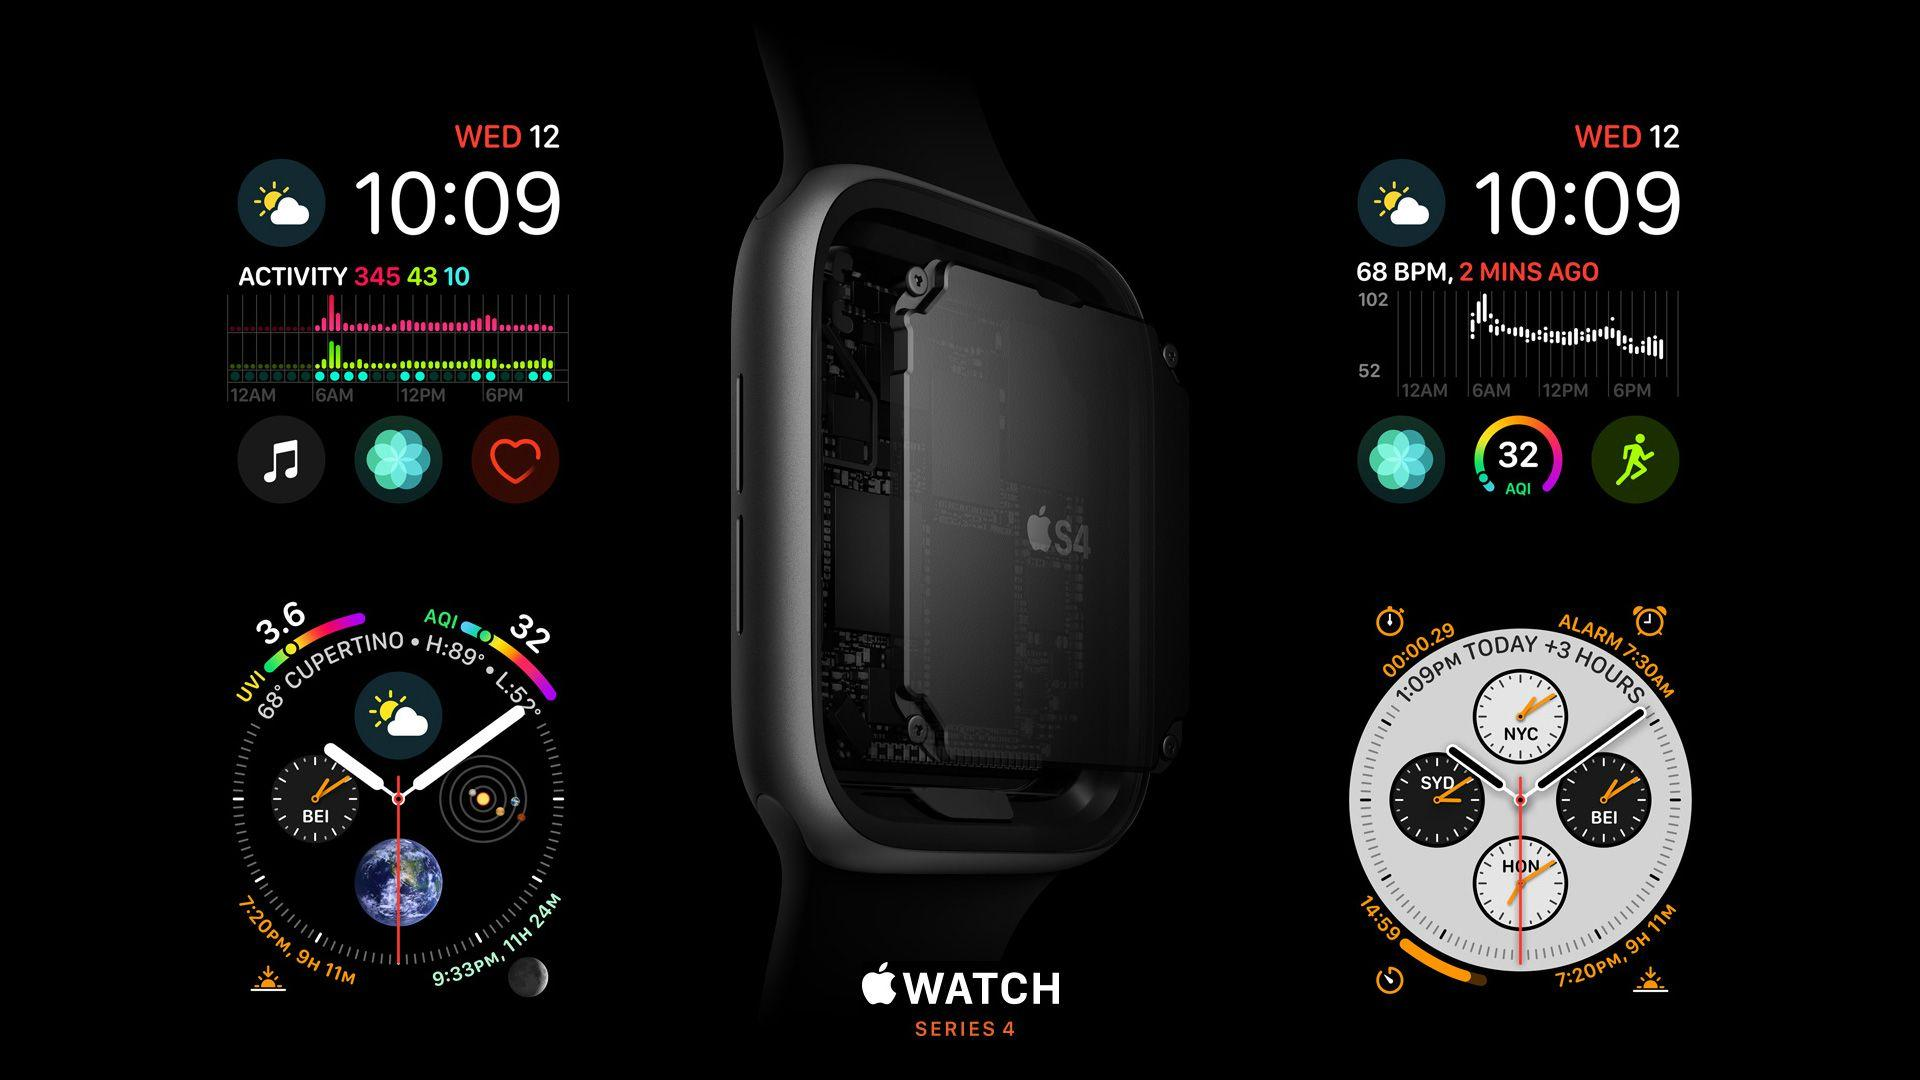 Wallpapers Apple Watch Series 4, S4, Apple September 2018 Event, Hi